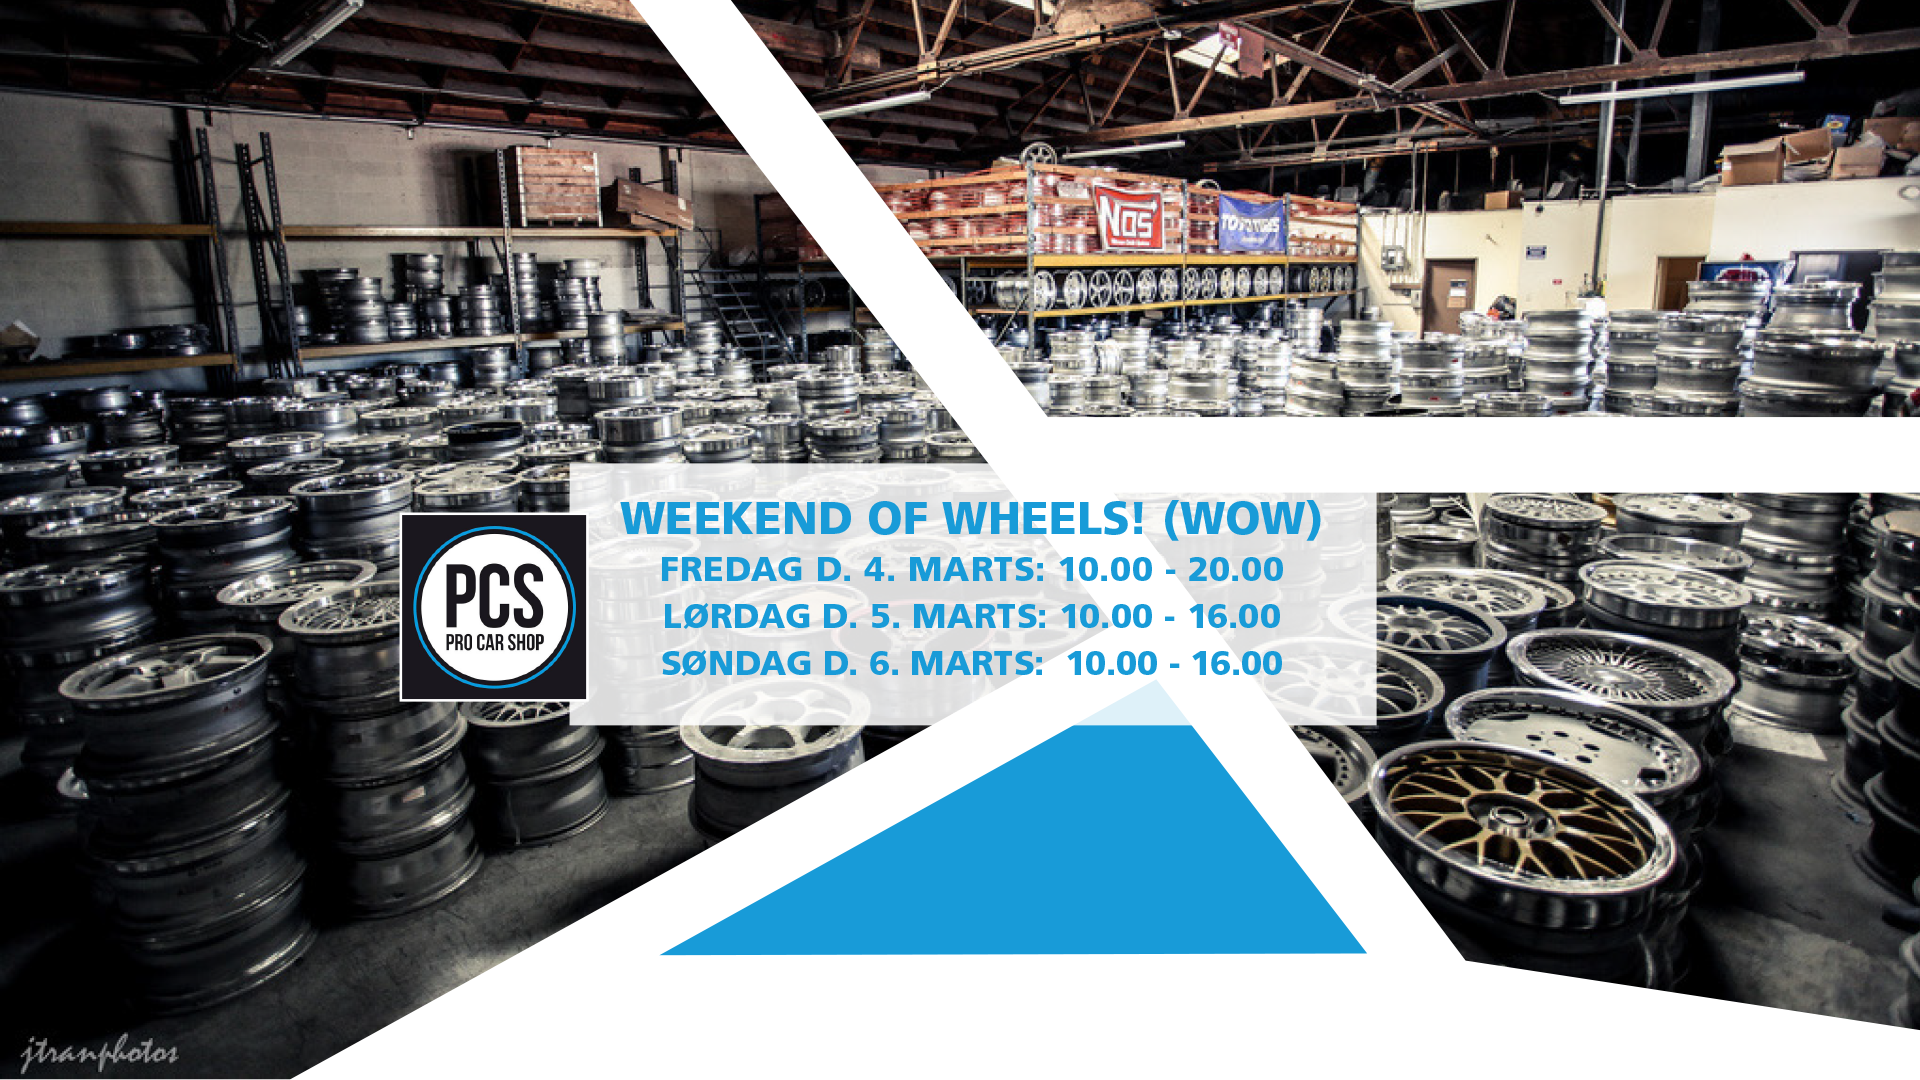 c972f8779 Pro Car Shop inviterer til Weekend of Wheels - Boosted Magazine ...